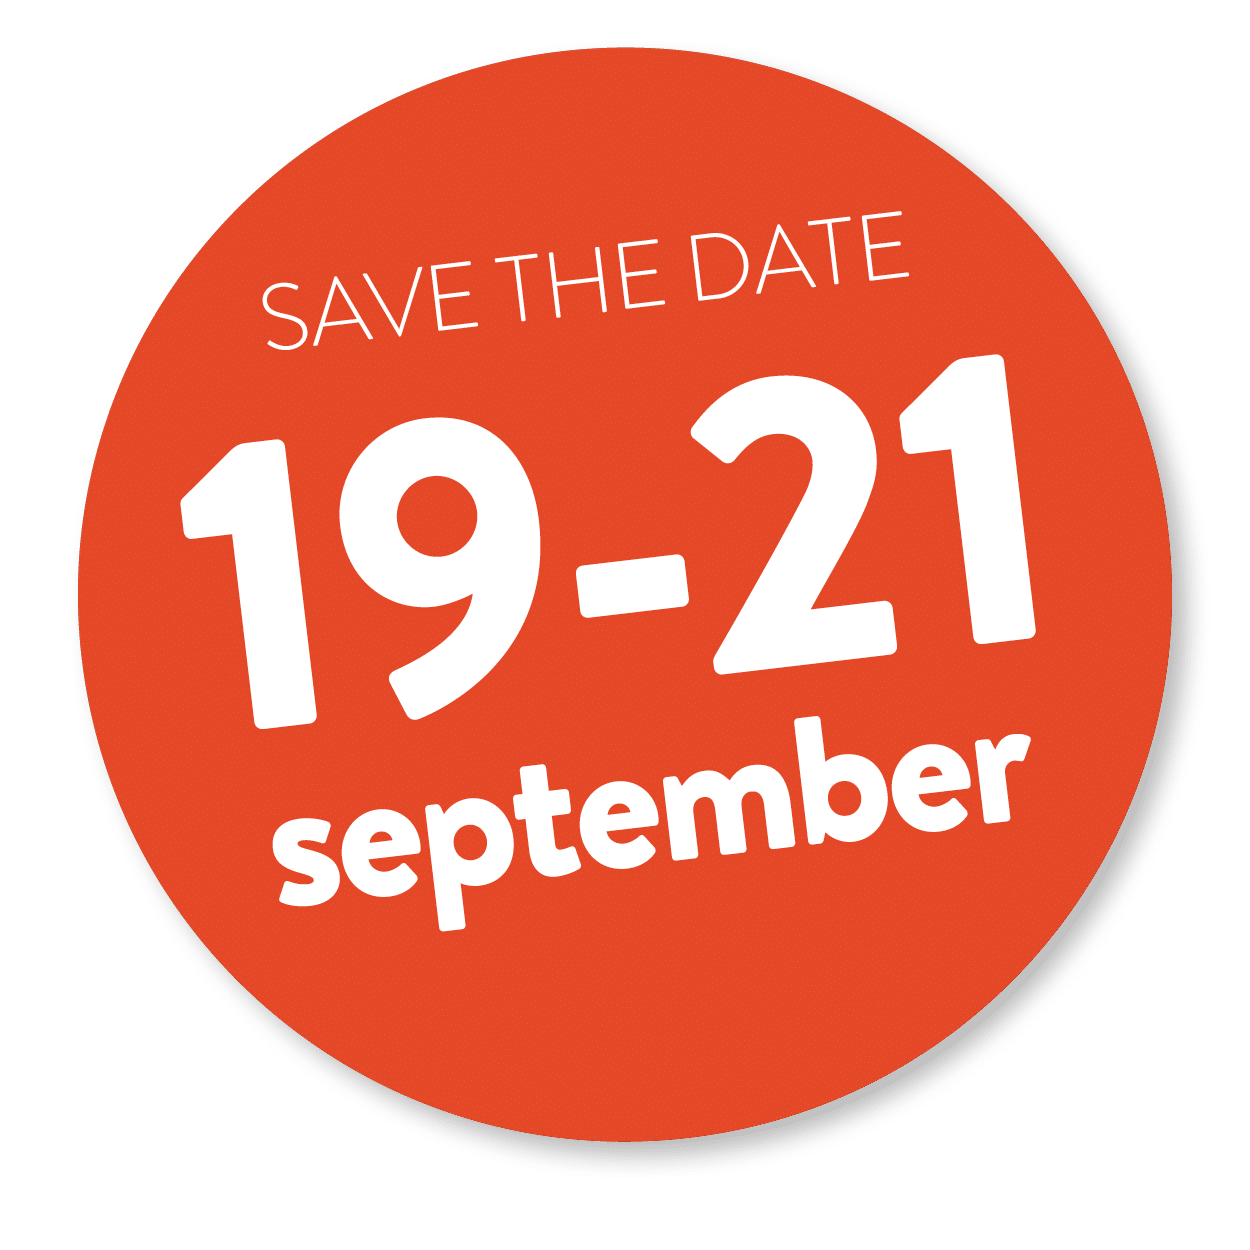 save the date 19 - 21 sep